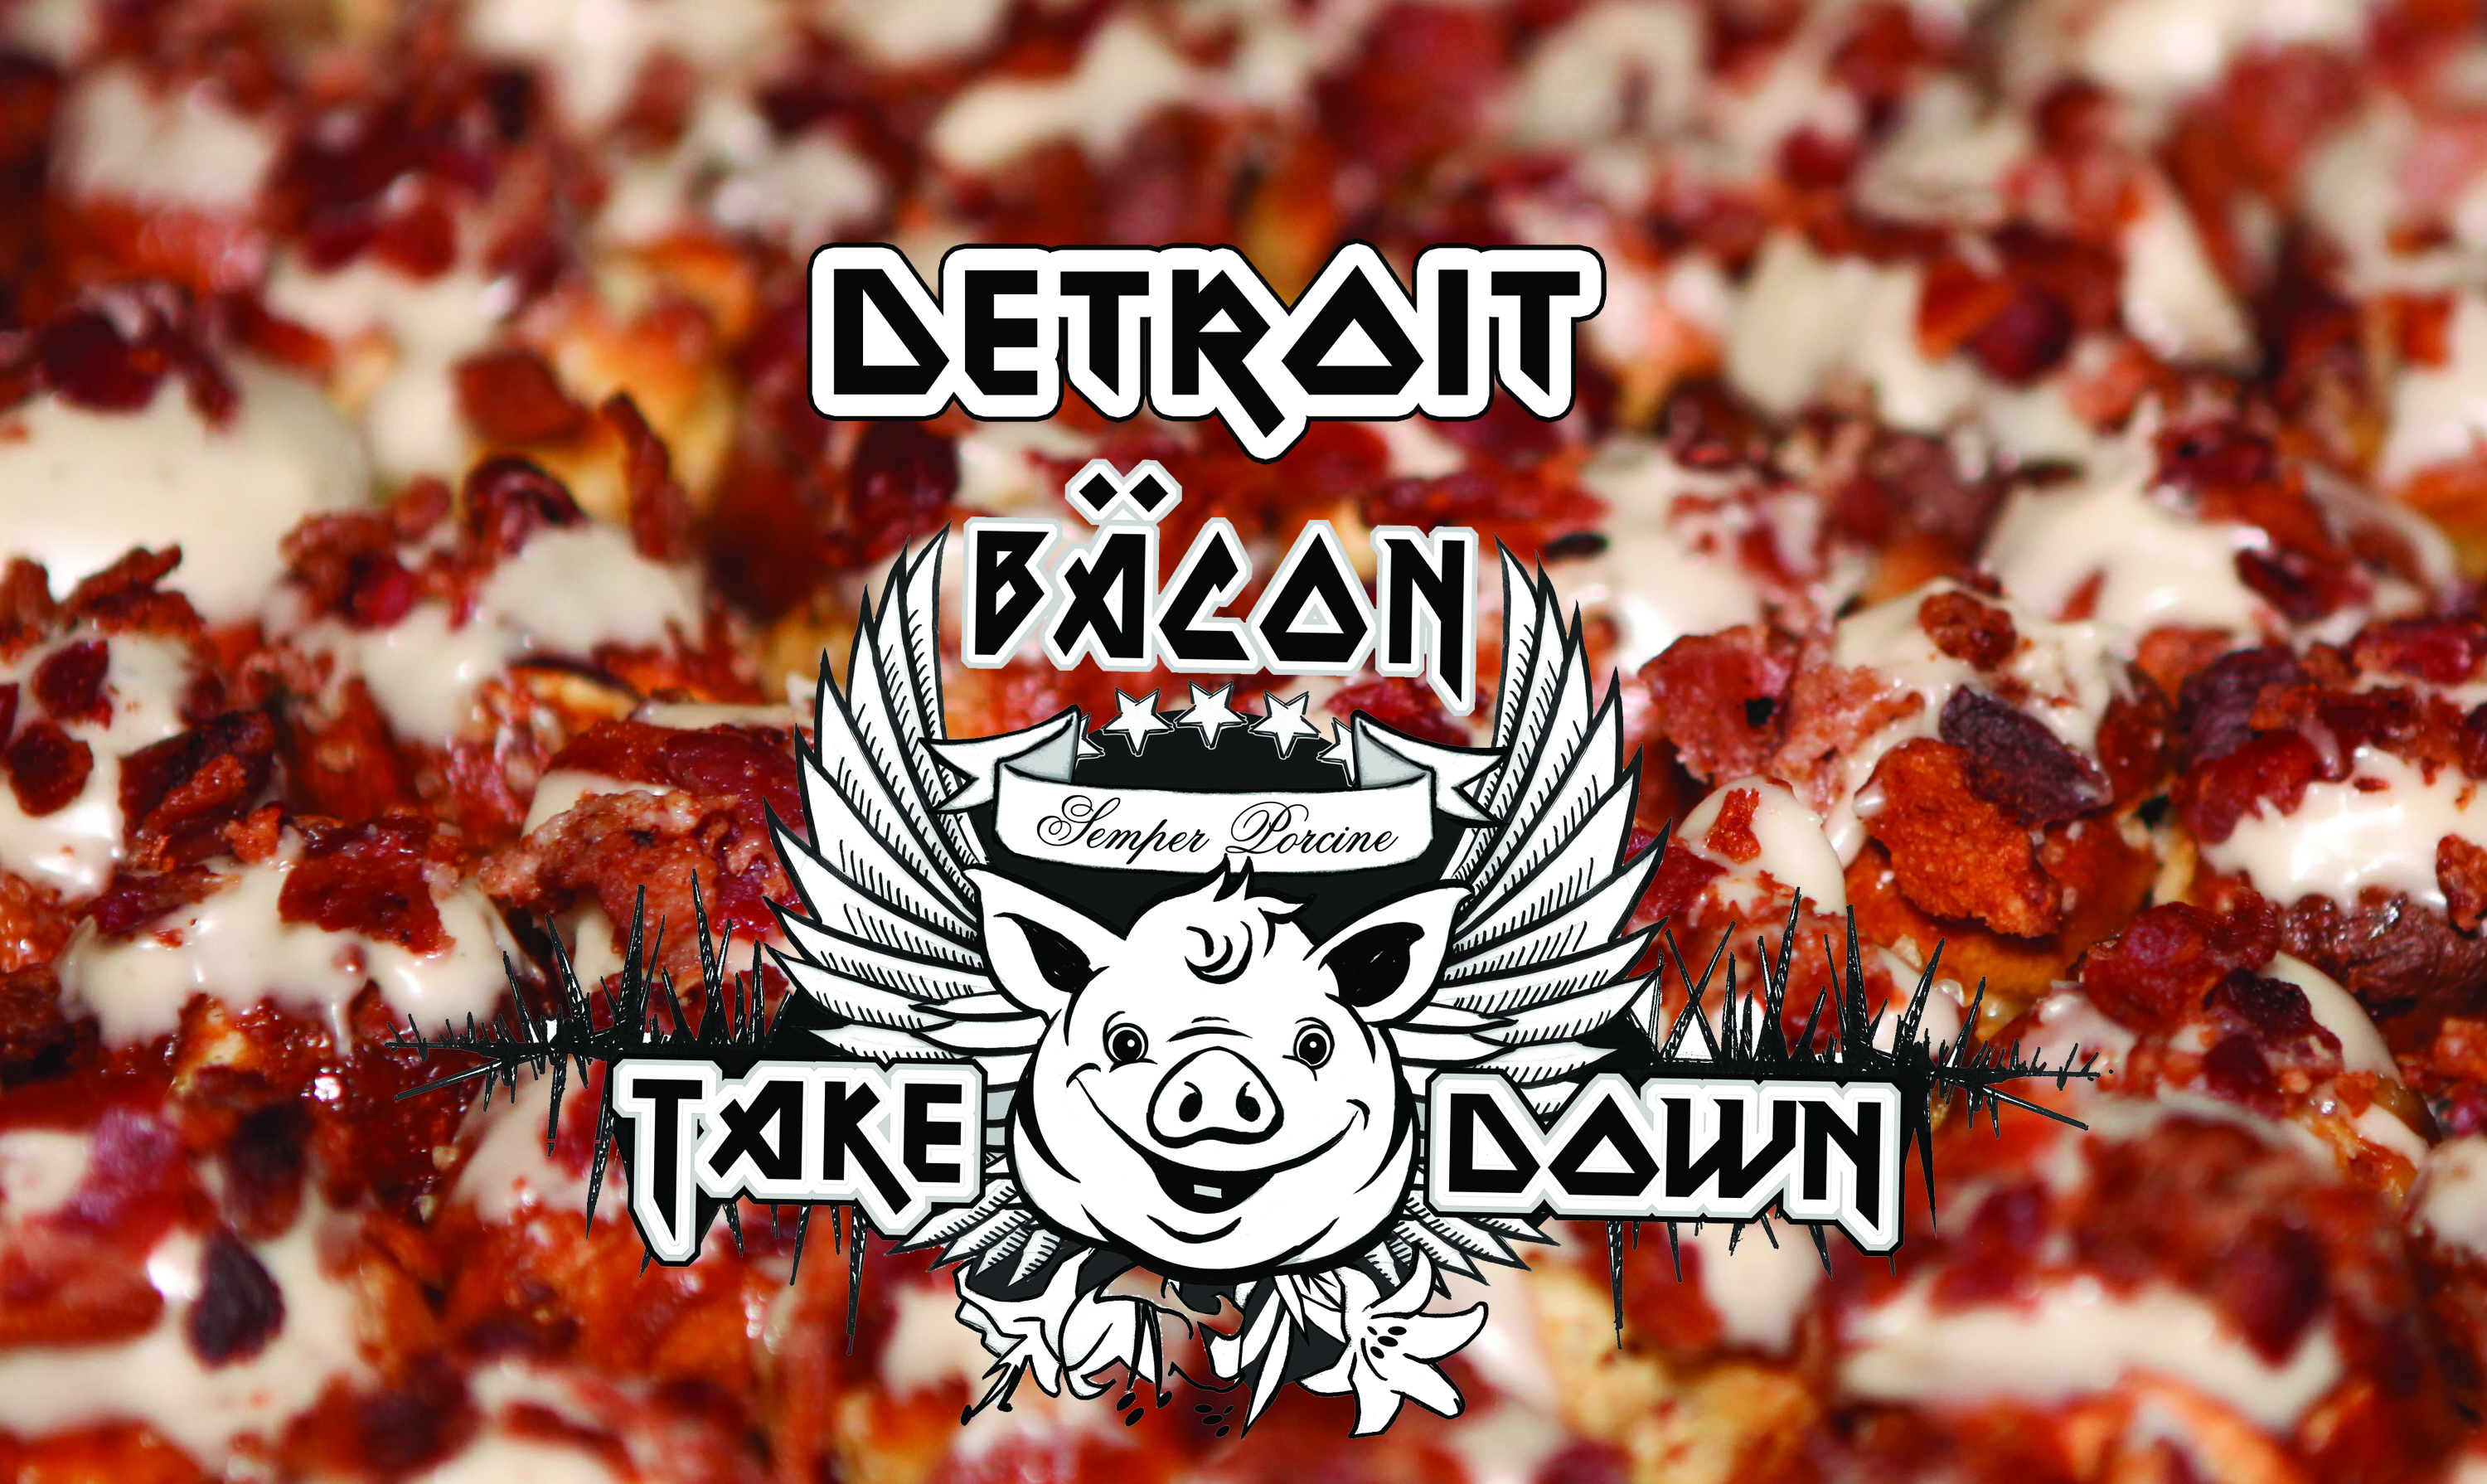 DETROIT BACON4